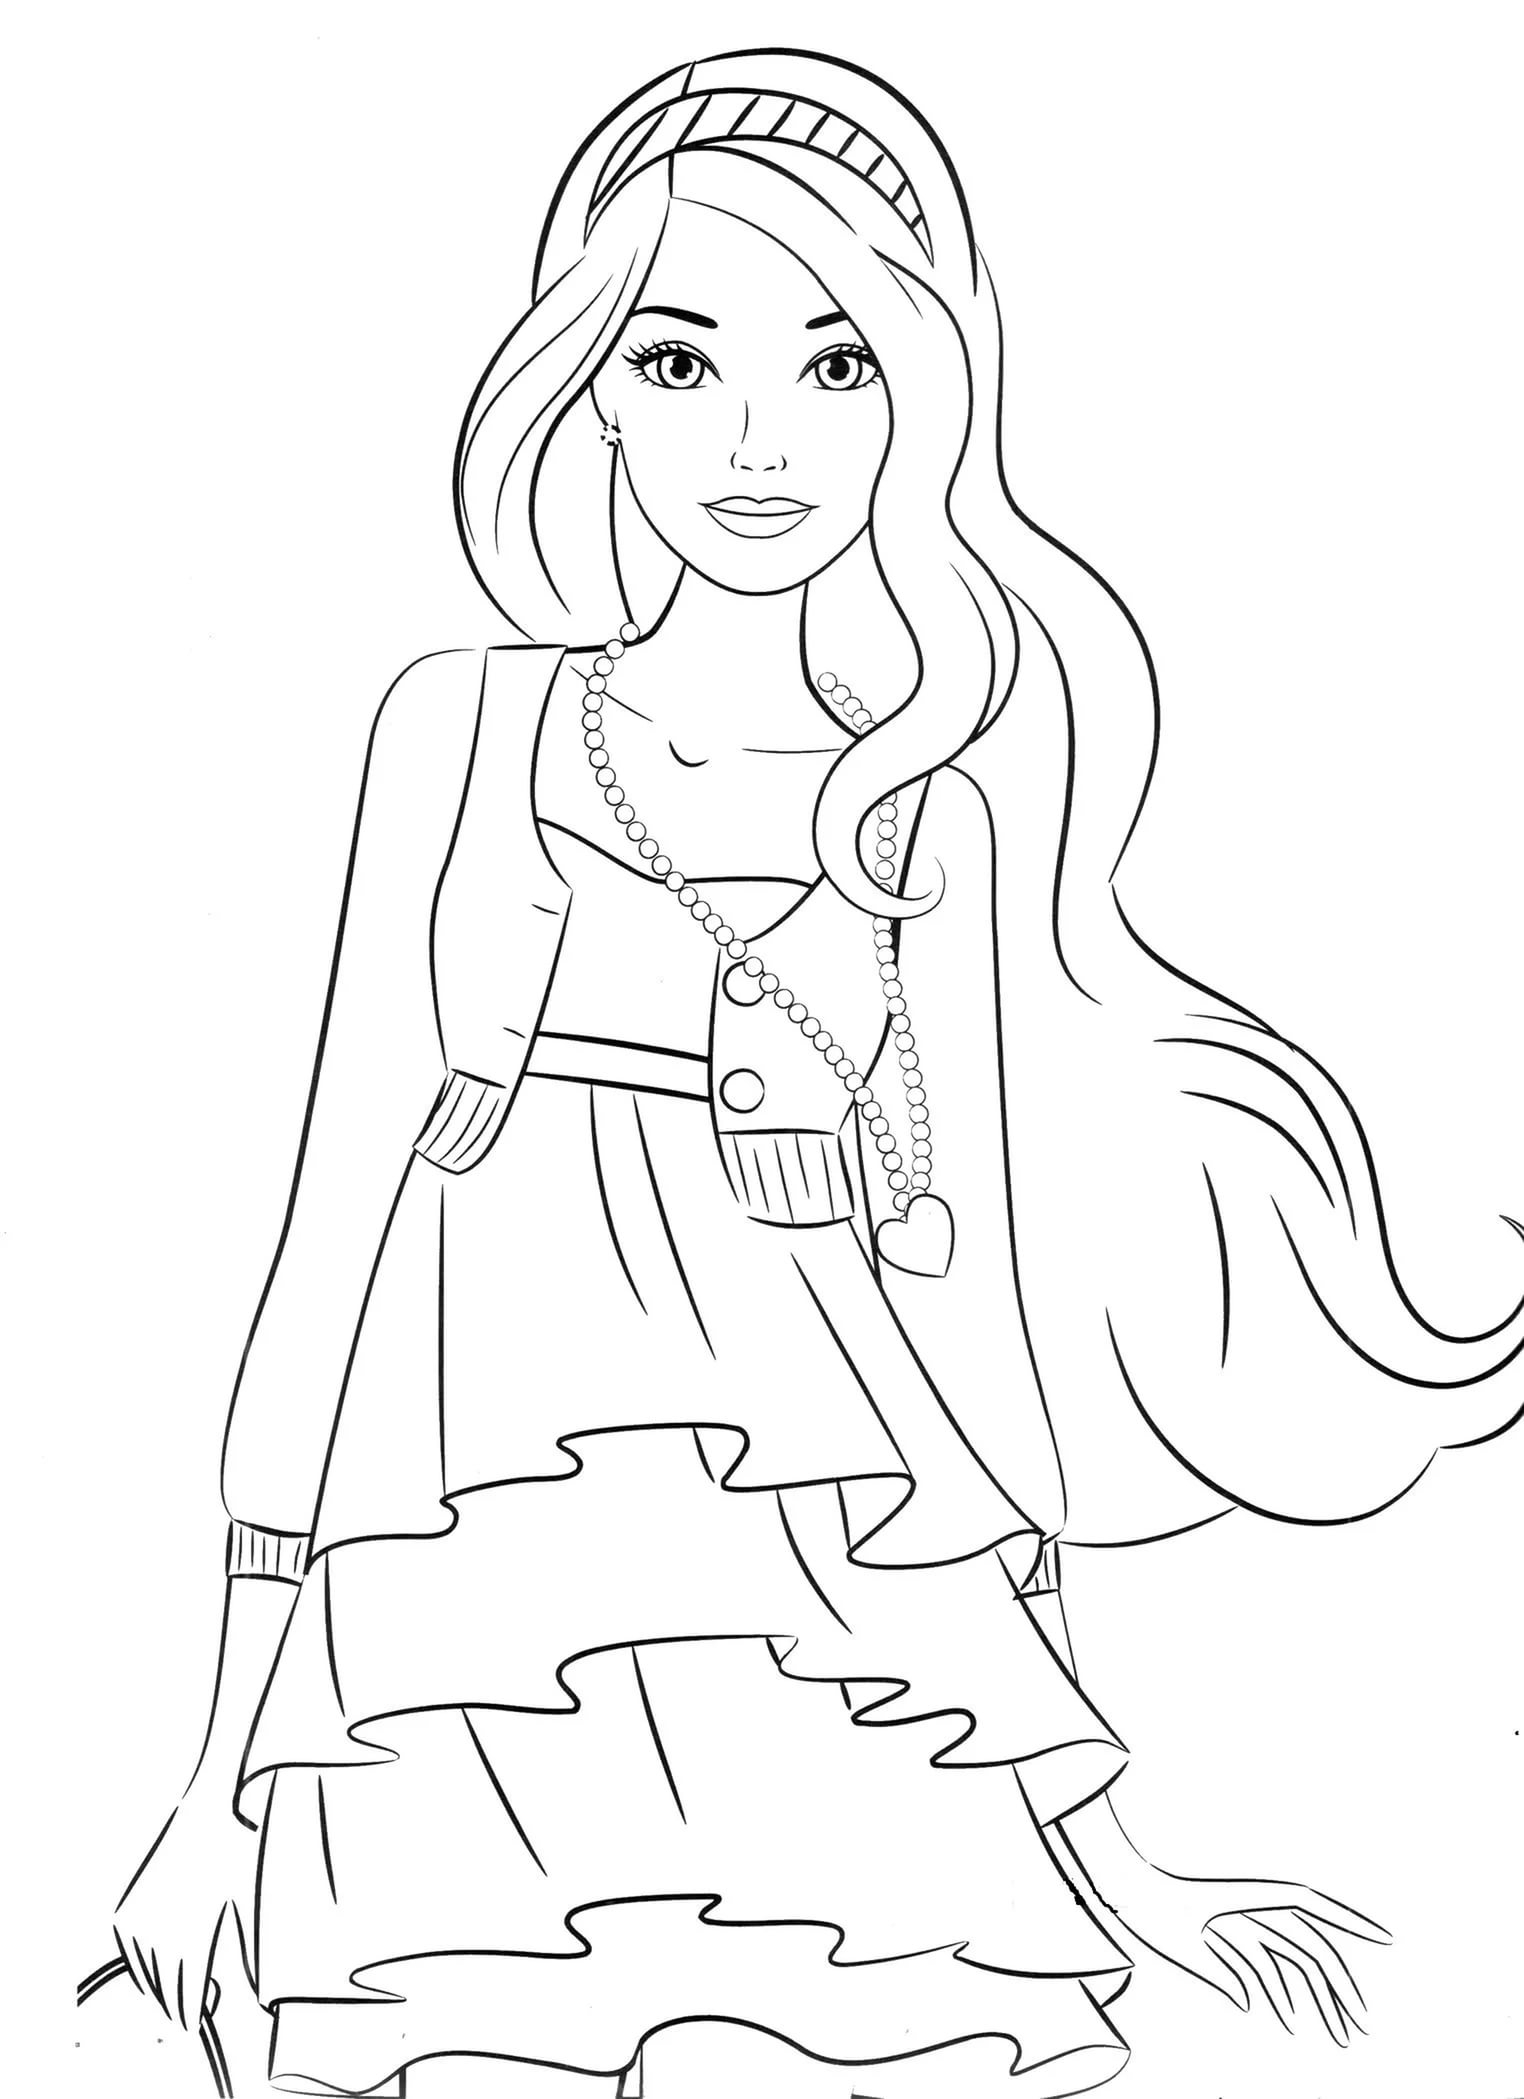 Coloring Pages For 10 Year Old Girls Coloring Pages For 8910 Year Old Girls To Download And Print For Free